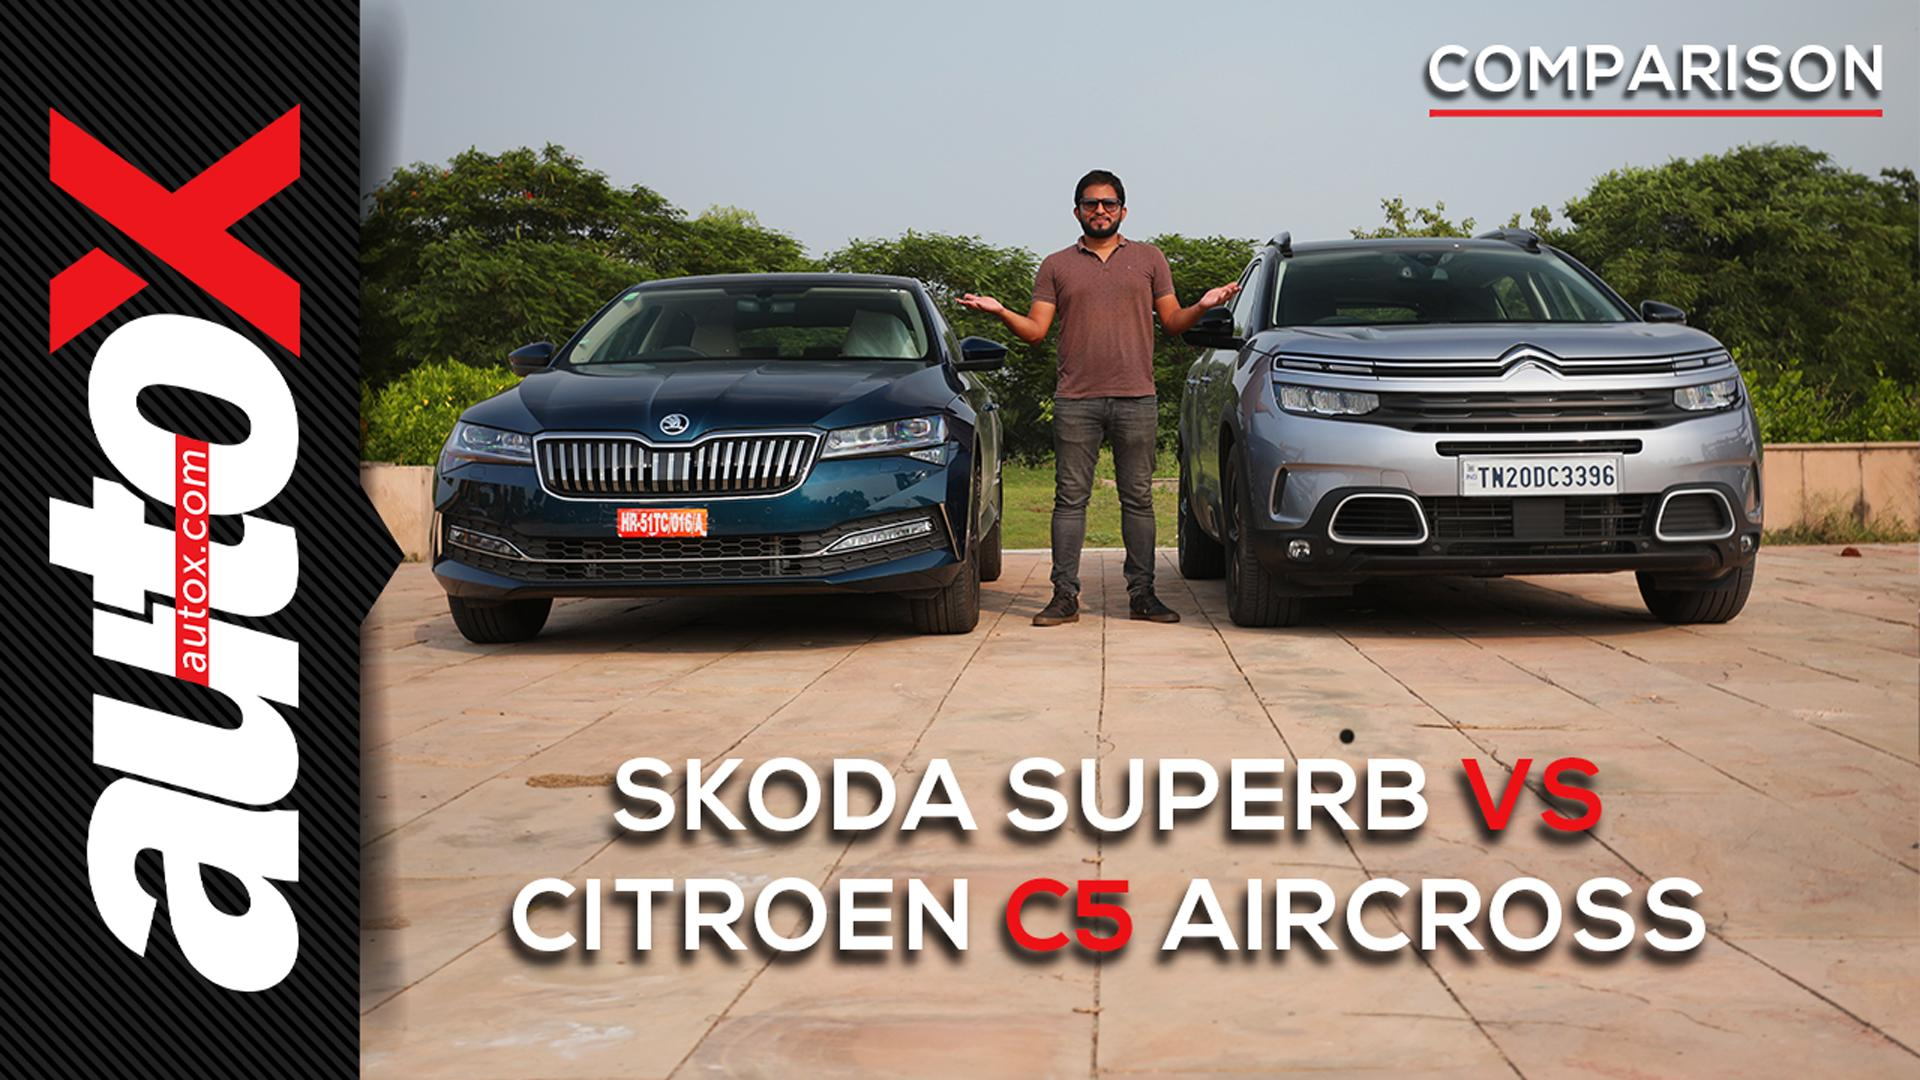 Citroen C5 Aircross vs Skoda Superb: SUV or Sedan, which one does comfort & luxury better? | autoX